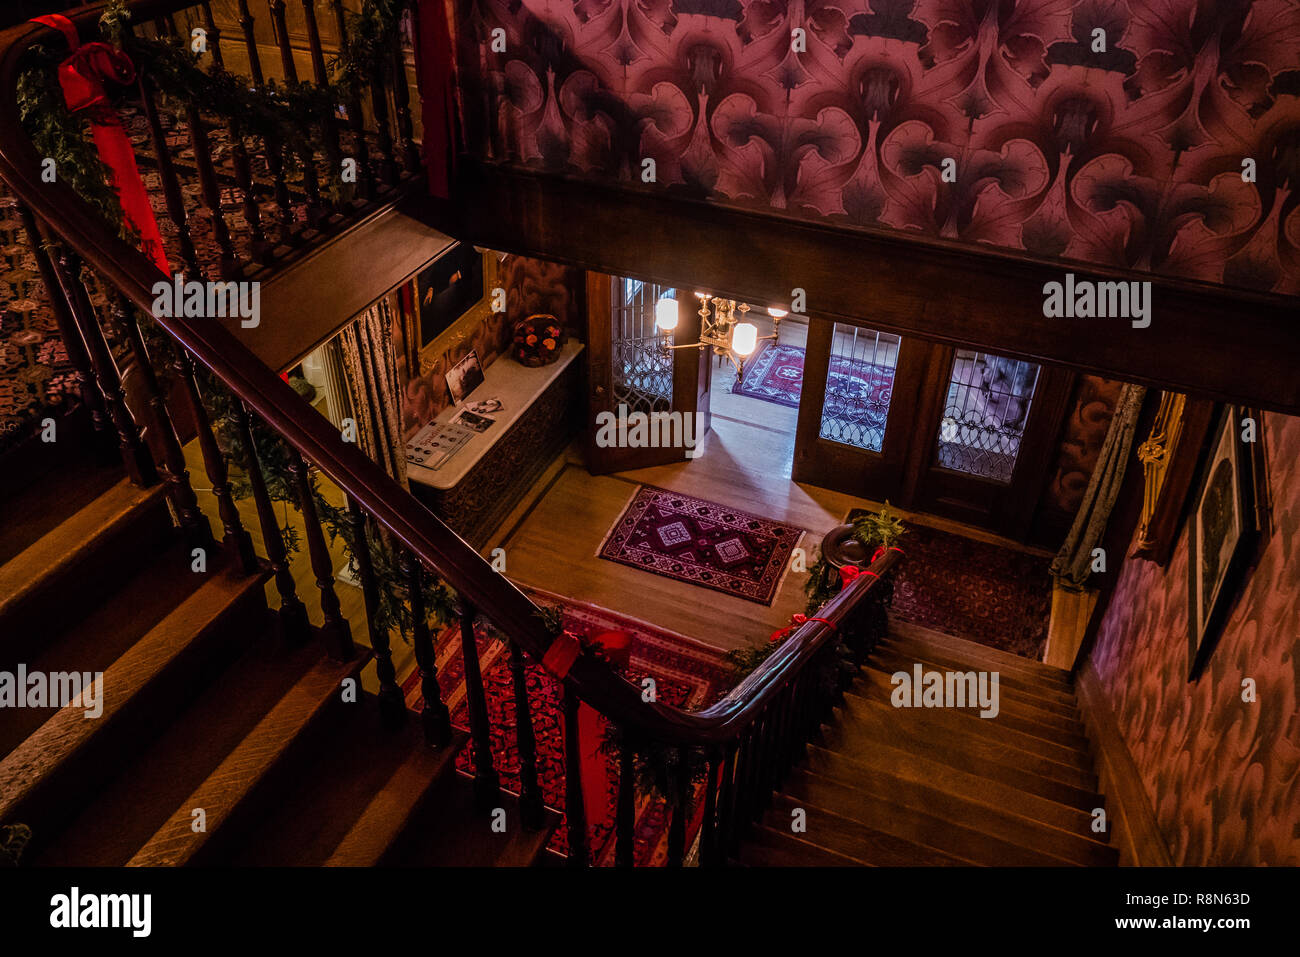 inside the toronto spadina house once occupied by the wealthy austin family in the 1920s Stock Photo